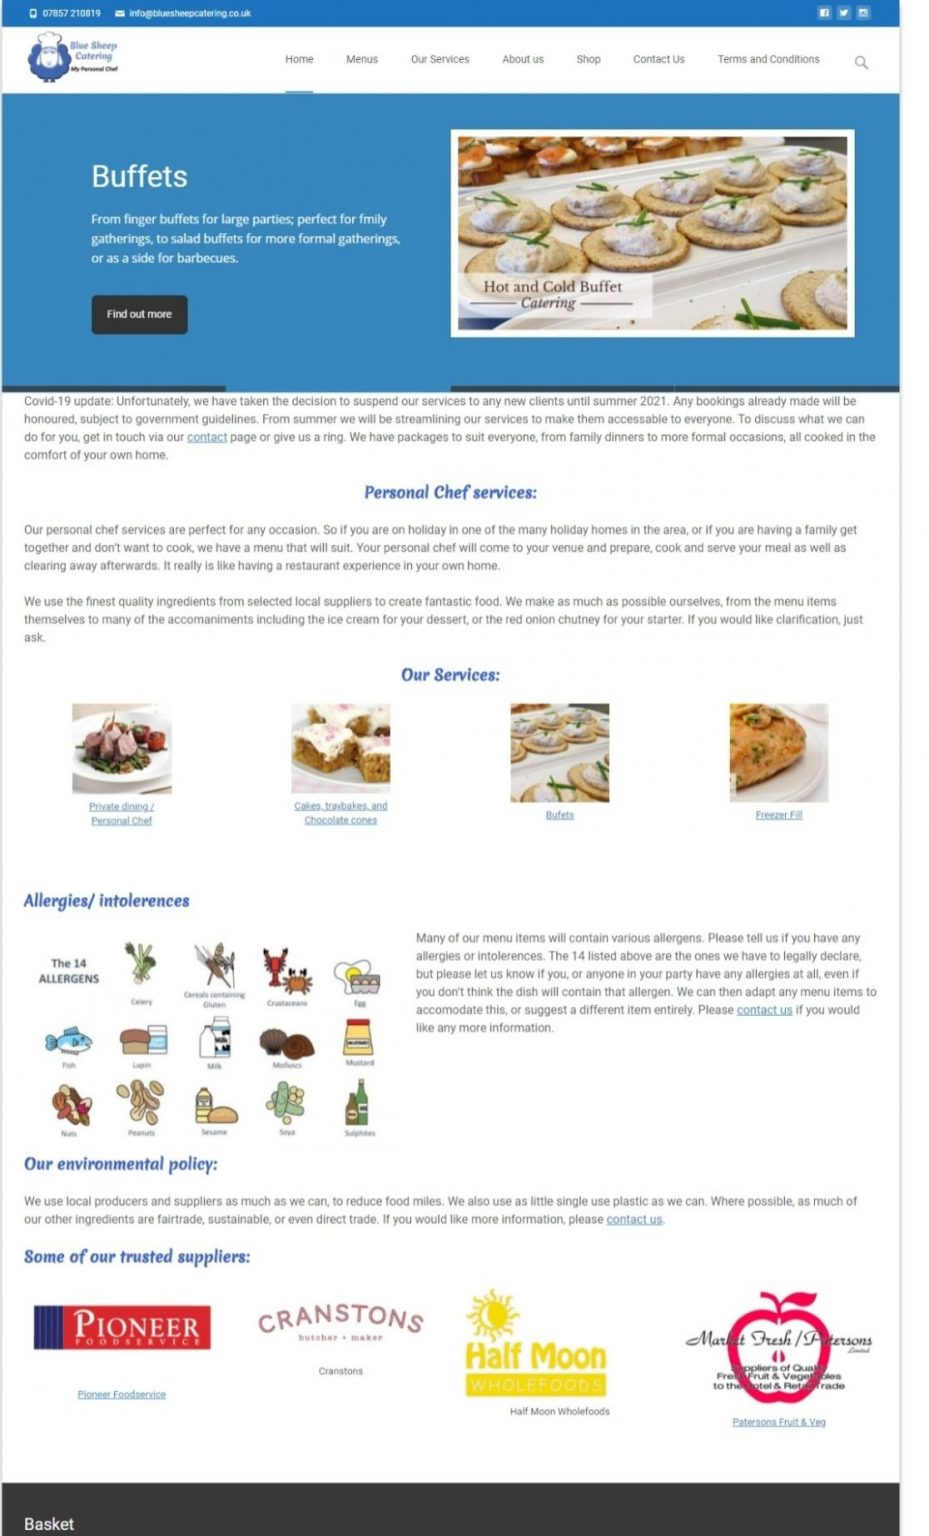 Blue Sheep Catering